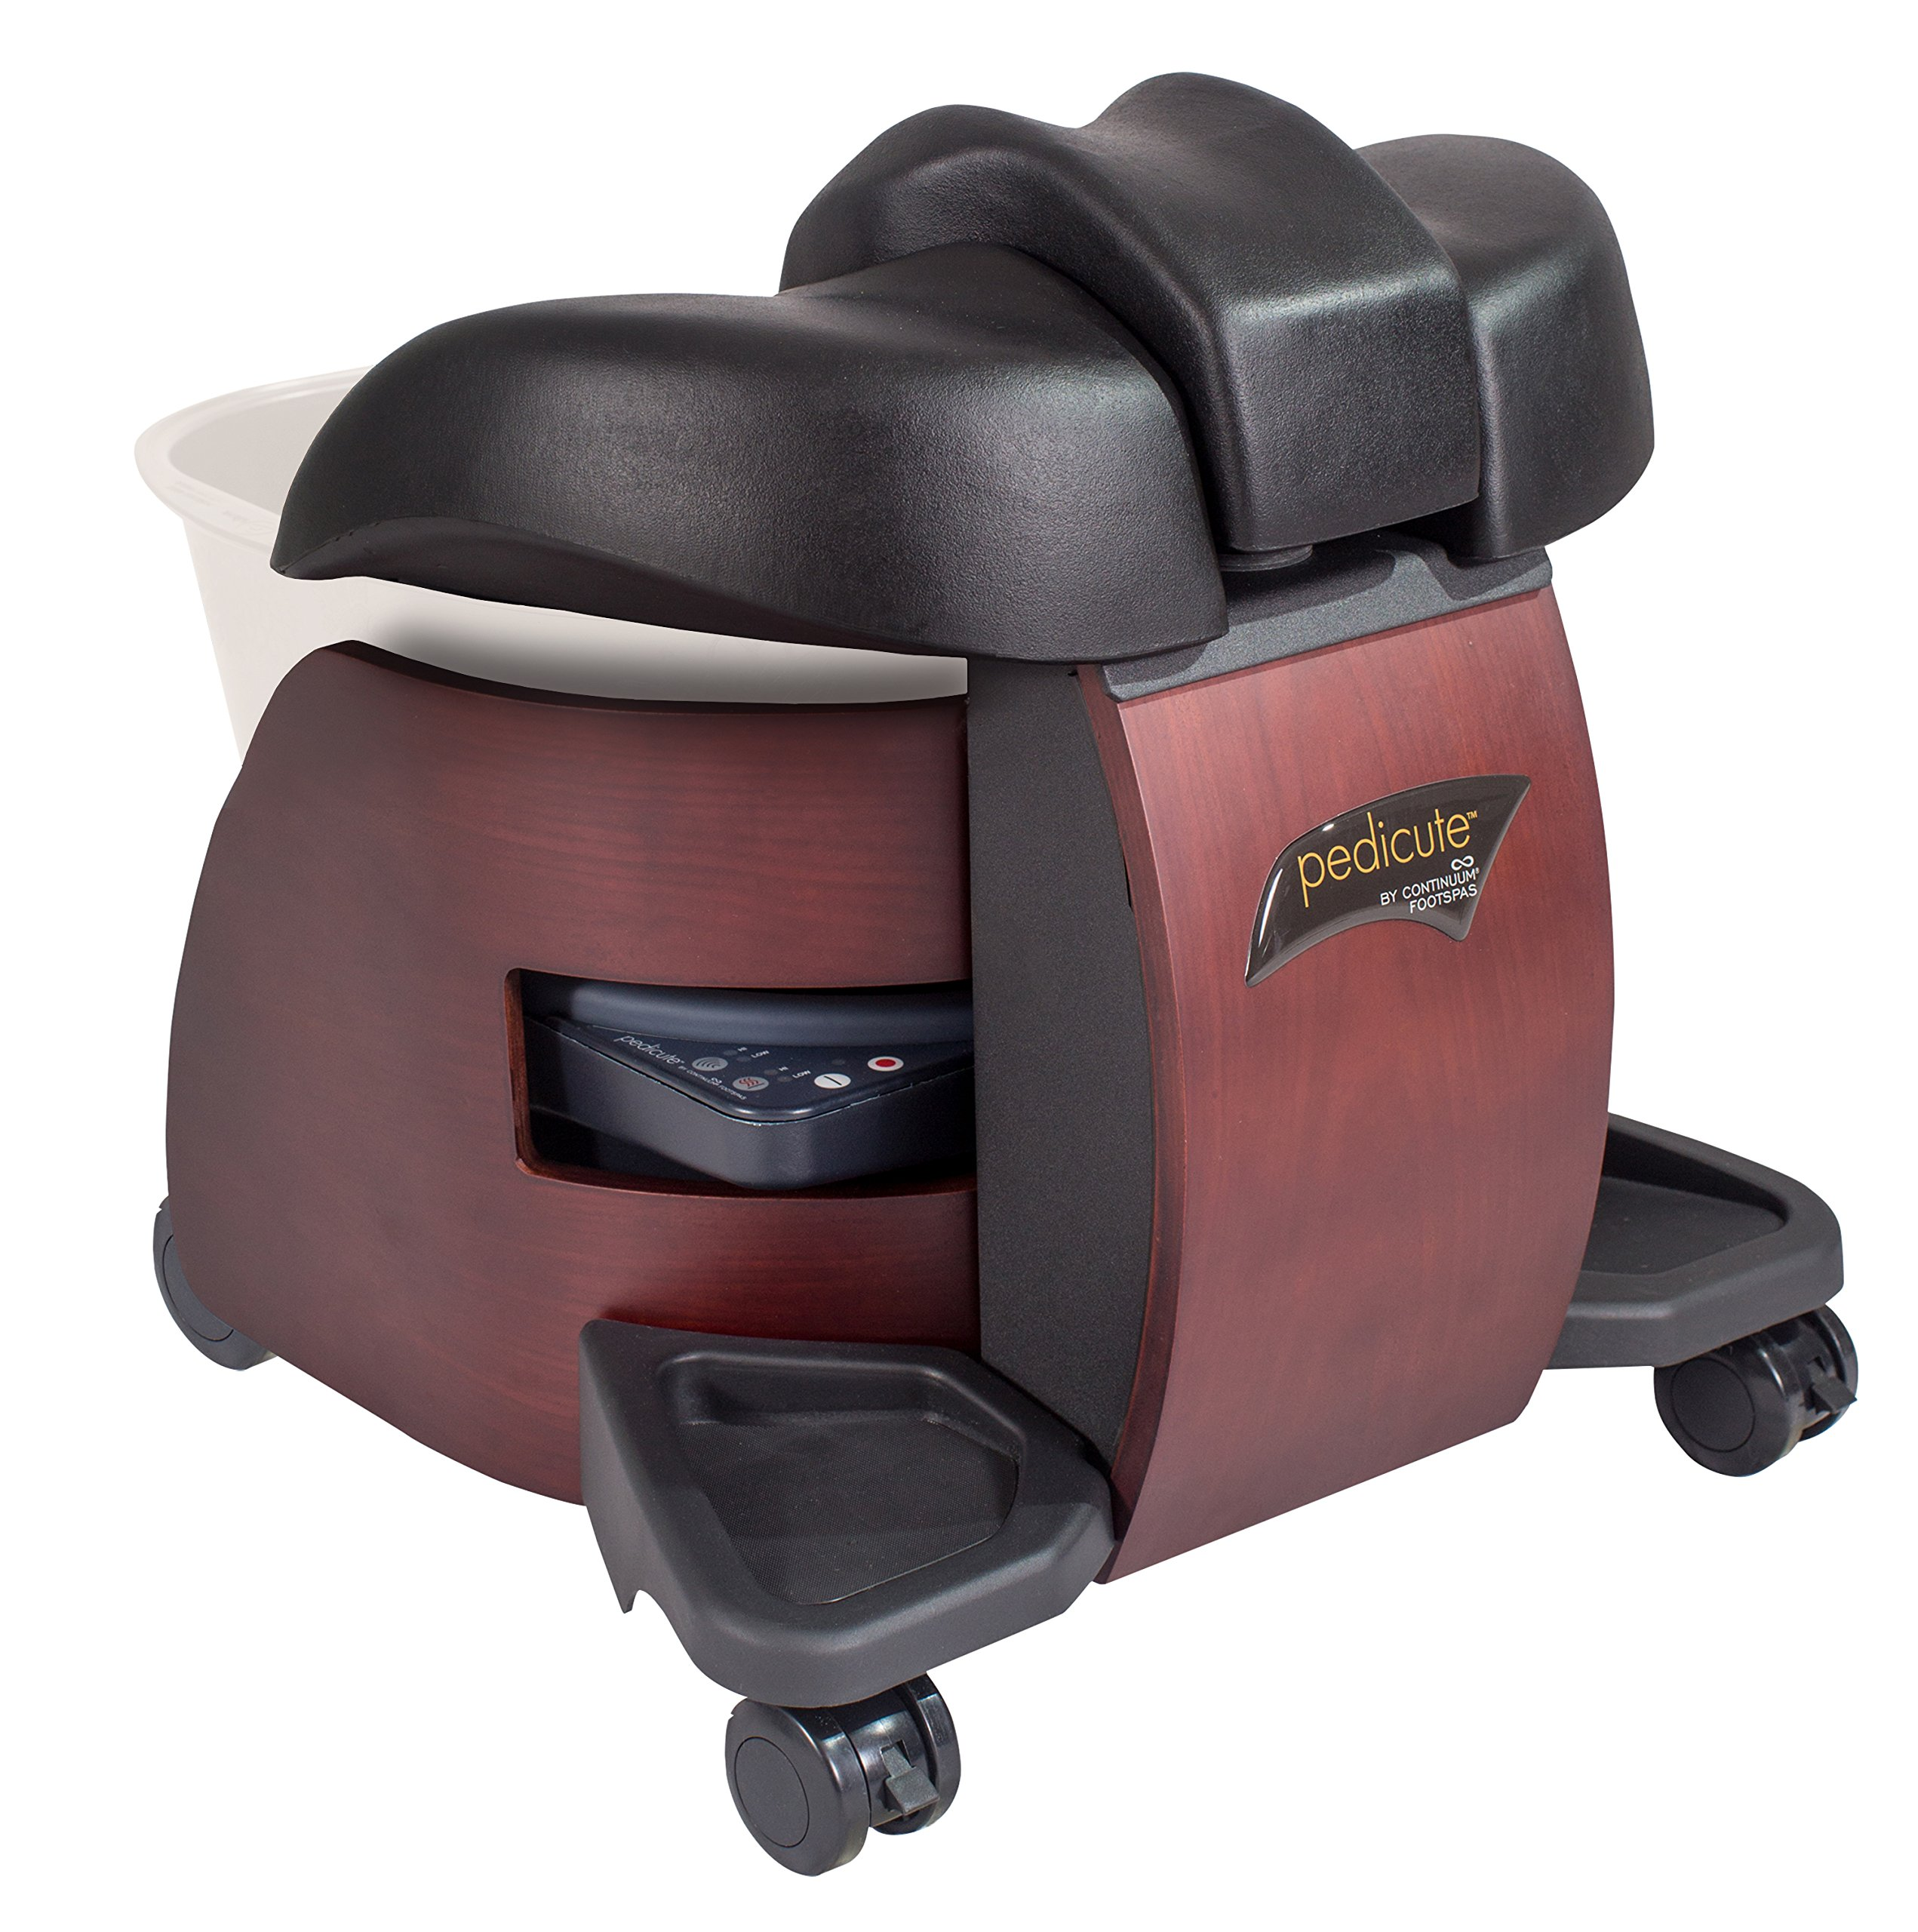 CONTINUUM PediCute Portable Foot  Spa - Eco-Friendly & Mobile Foot Bath / Like a Full Size Pedicure Spa (No Plumping Needed)